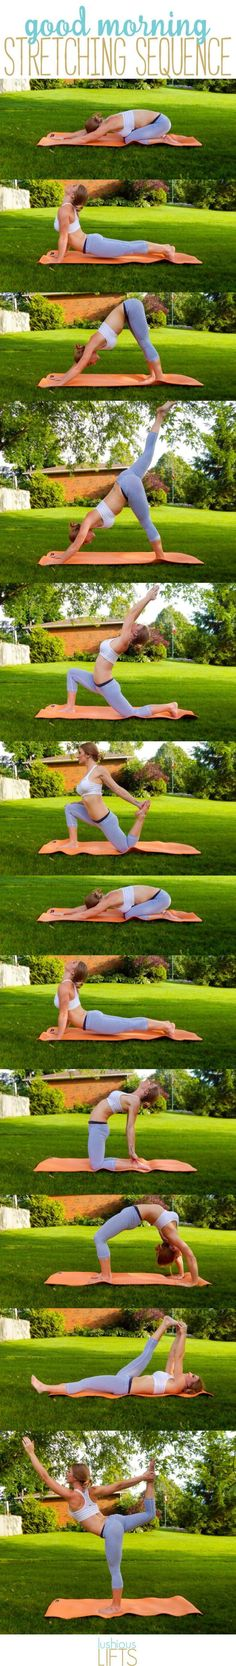 Love Yoga! awesome good morning stretching sequence...